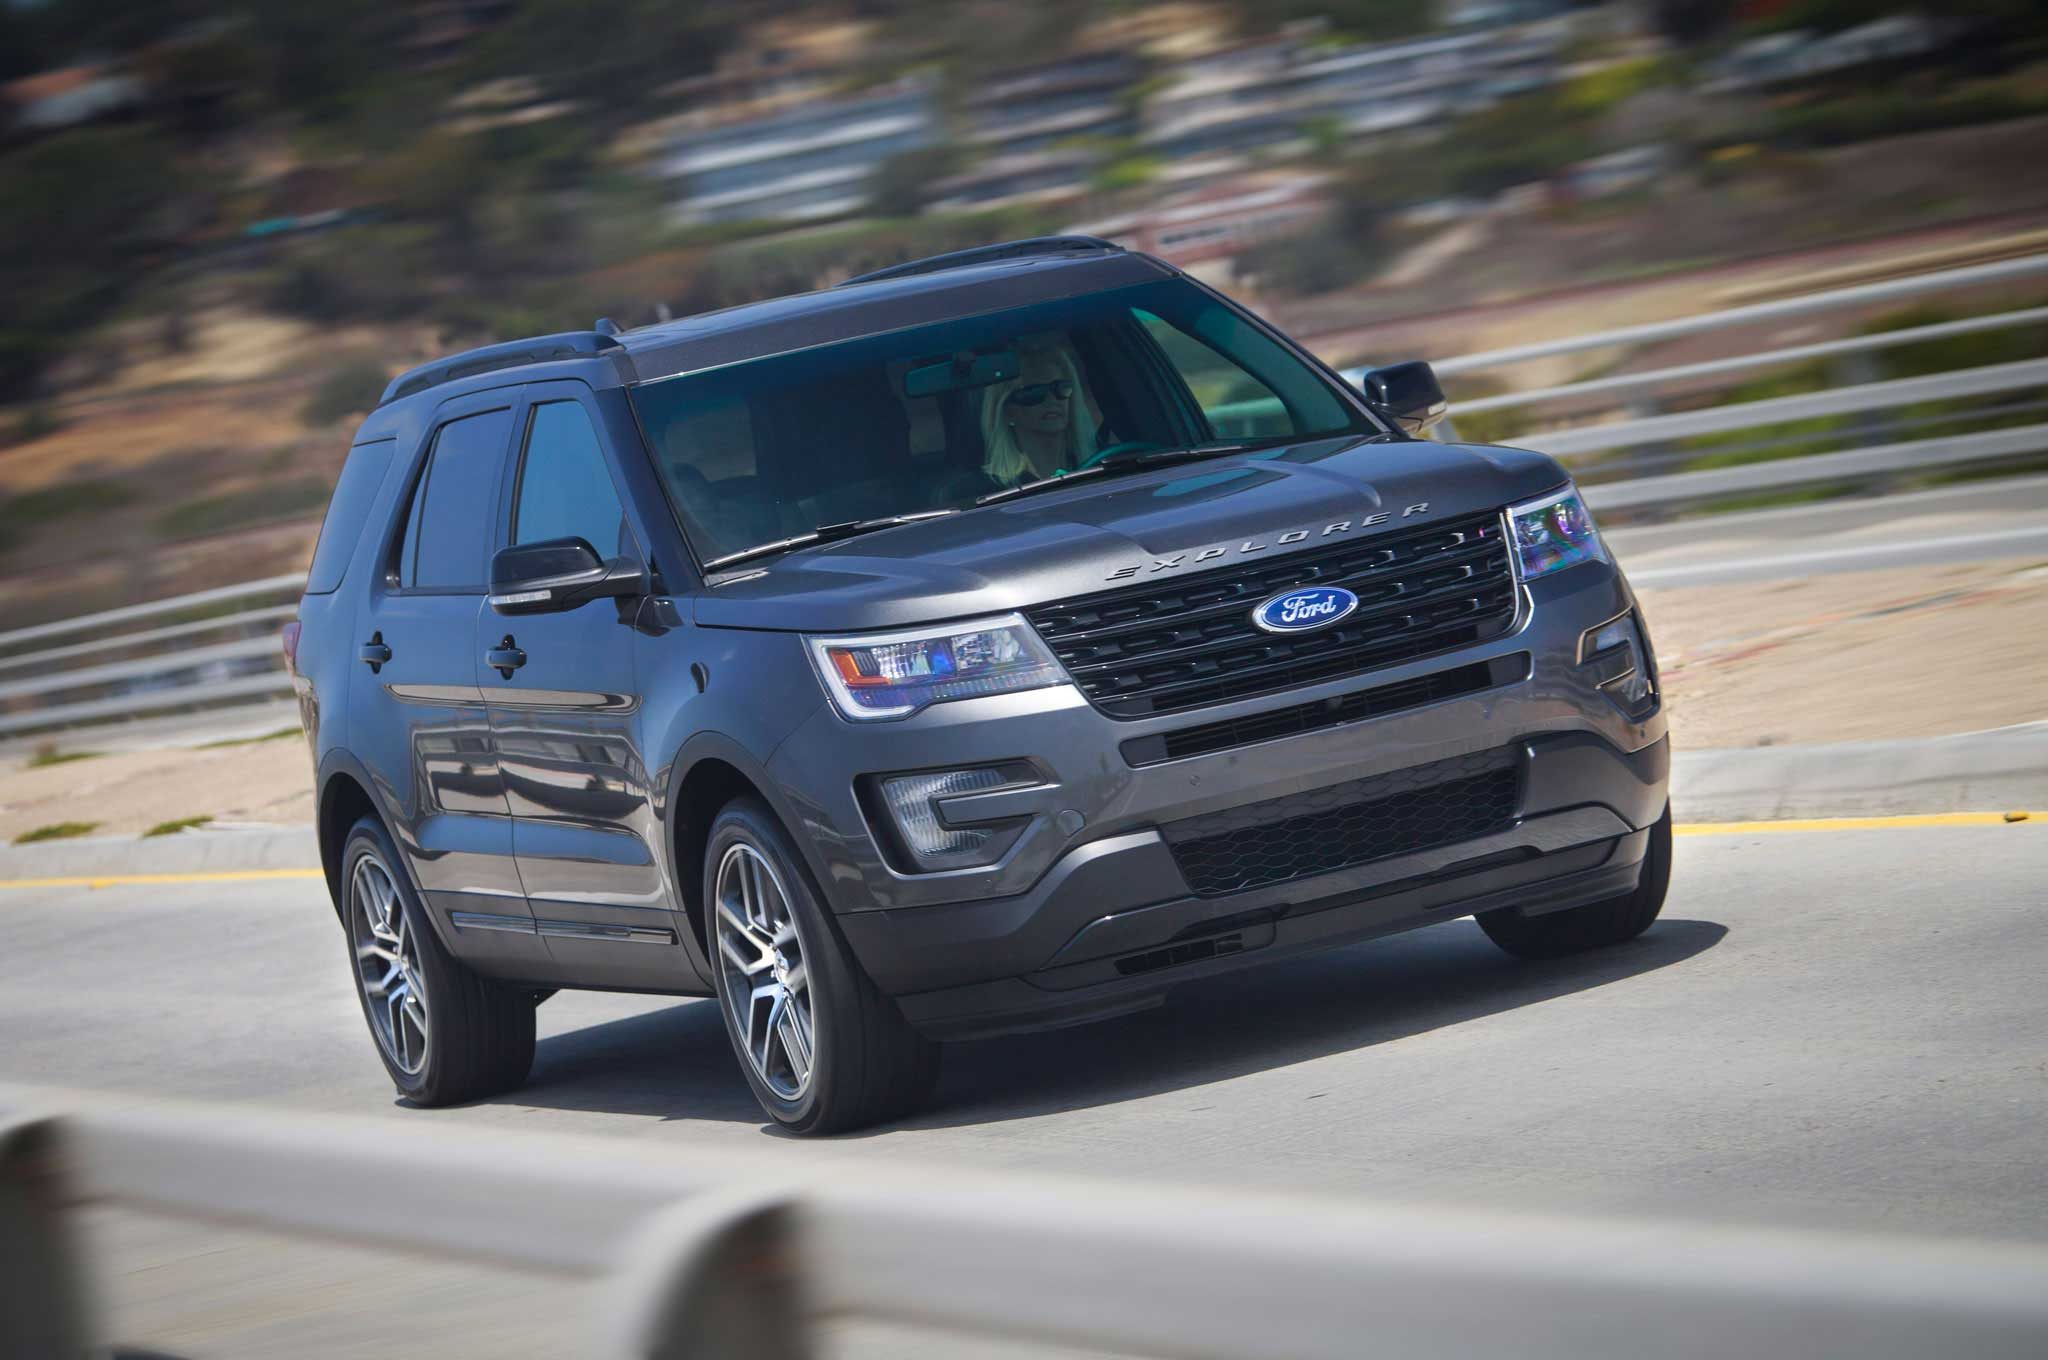 2016-ford-explorer-front-view